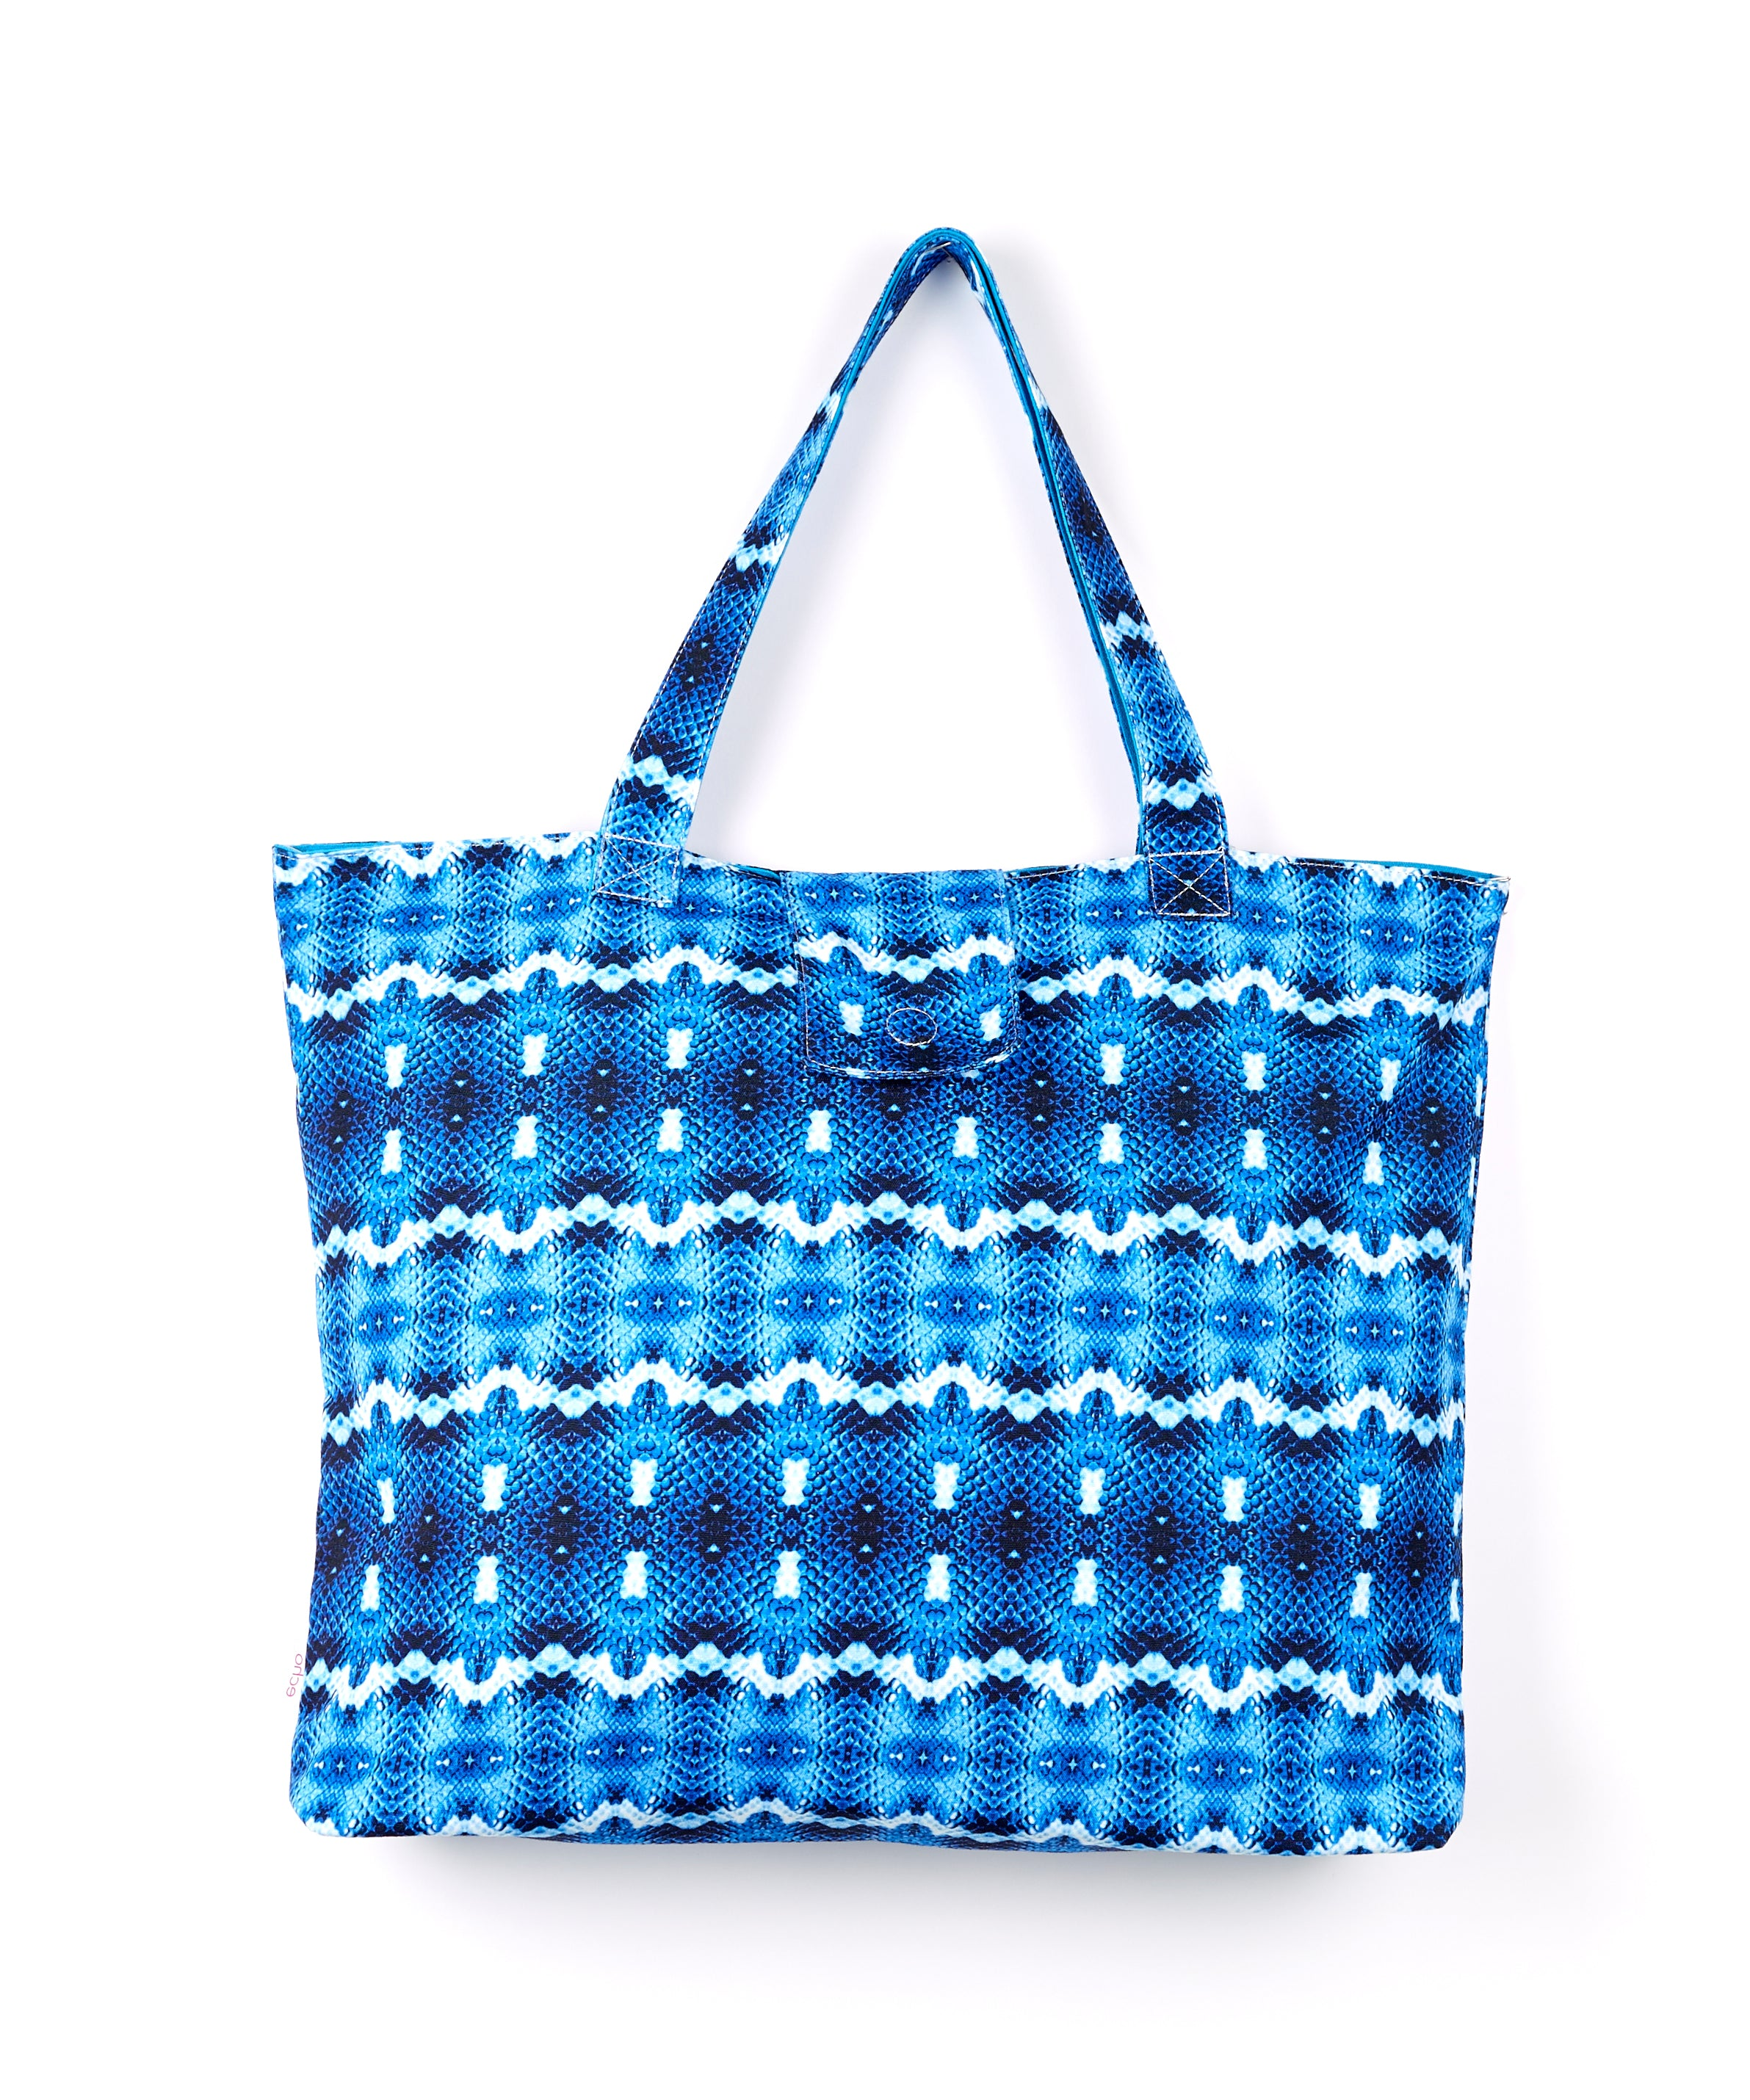 Ocean - Anaconda Atlantis Rev. Tote